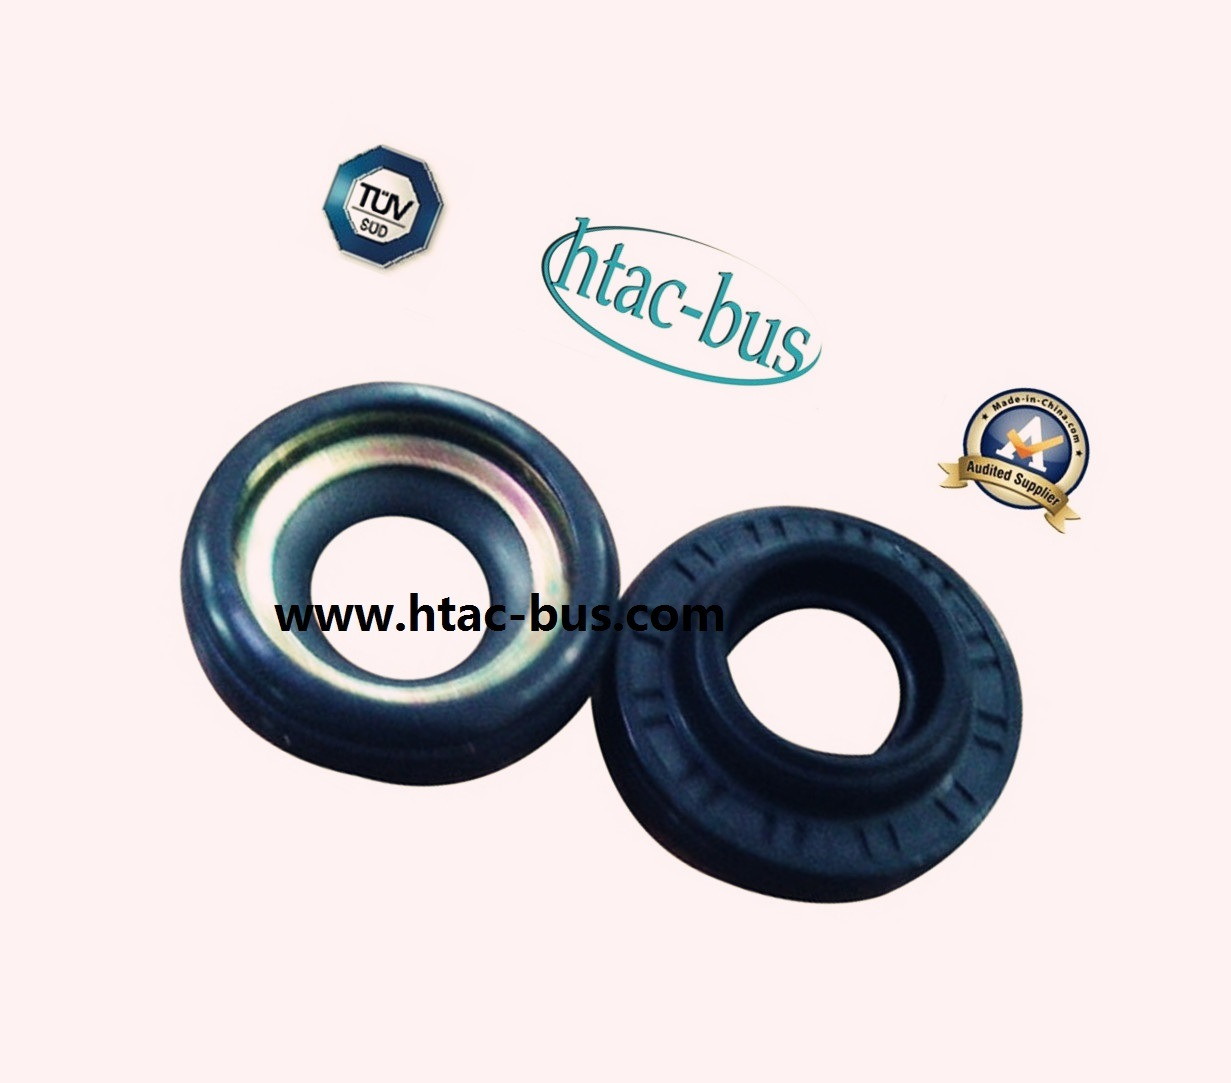 Dks32 /TM31 Compressor Rubber Shaft Seal 32mm Bus A/C Parts